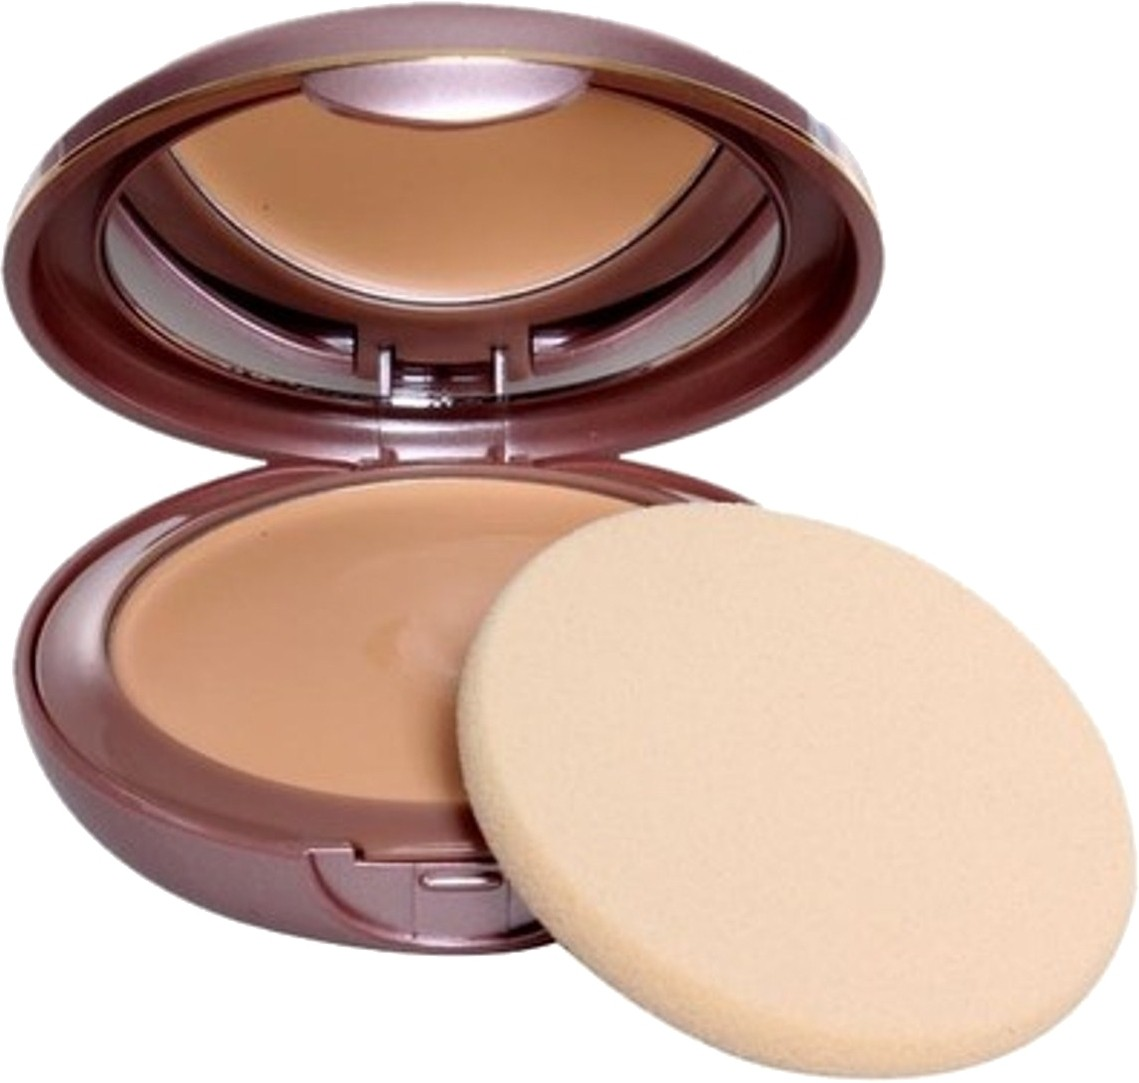 Buy Lakme Nine to Five Flawless Creme Compact - 9 g Shell @ ₹ 500 by Lakme from Flipkart | bechdo.in